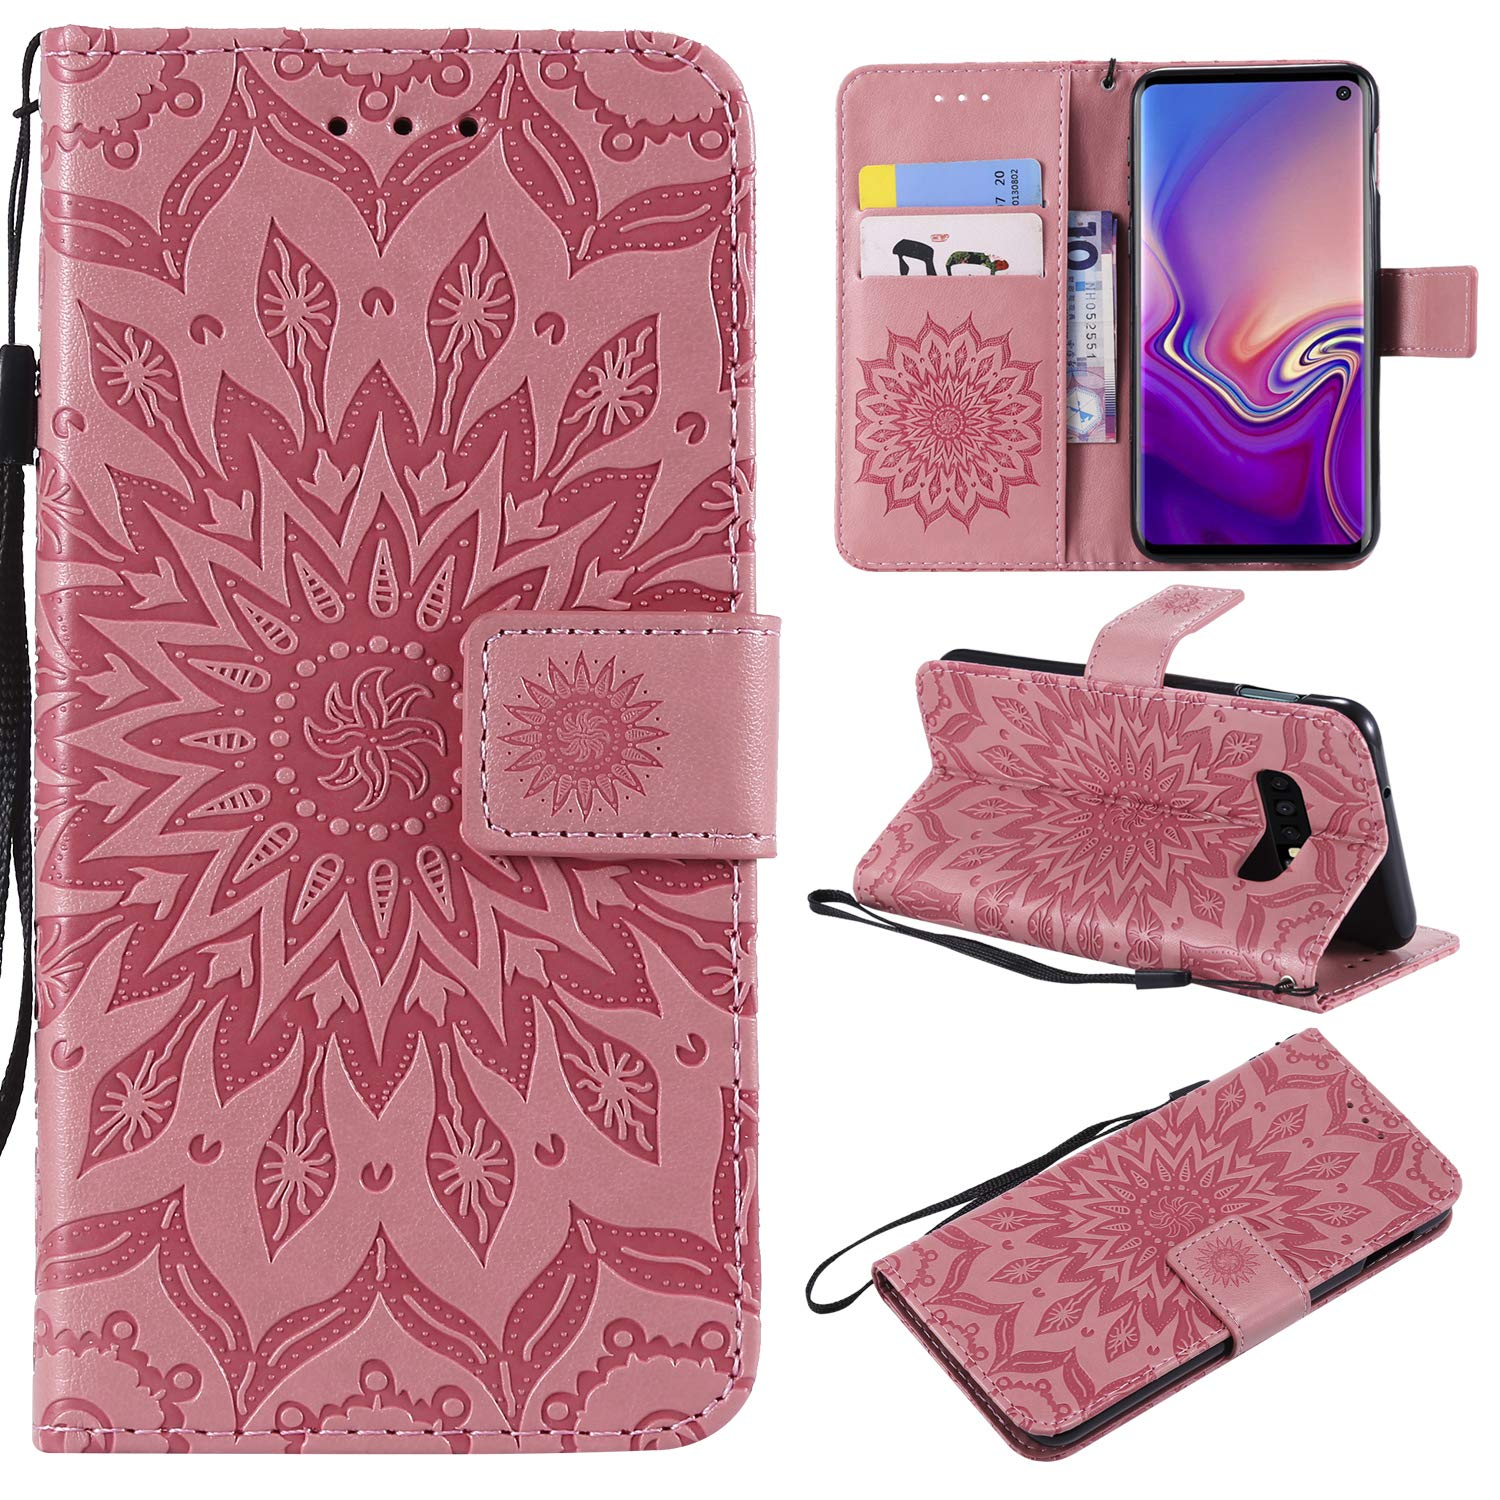 NOMO Galaxy S10 Case,Samsung S10 Wallet Case,Galaxy S10 Flip Case PU Leather Emboss Mandala Sun Flower Folio Magnetic Kickstand Cover with Card Slots for Samsung Galaxy S10 Gray